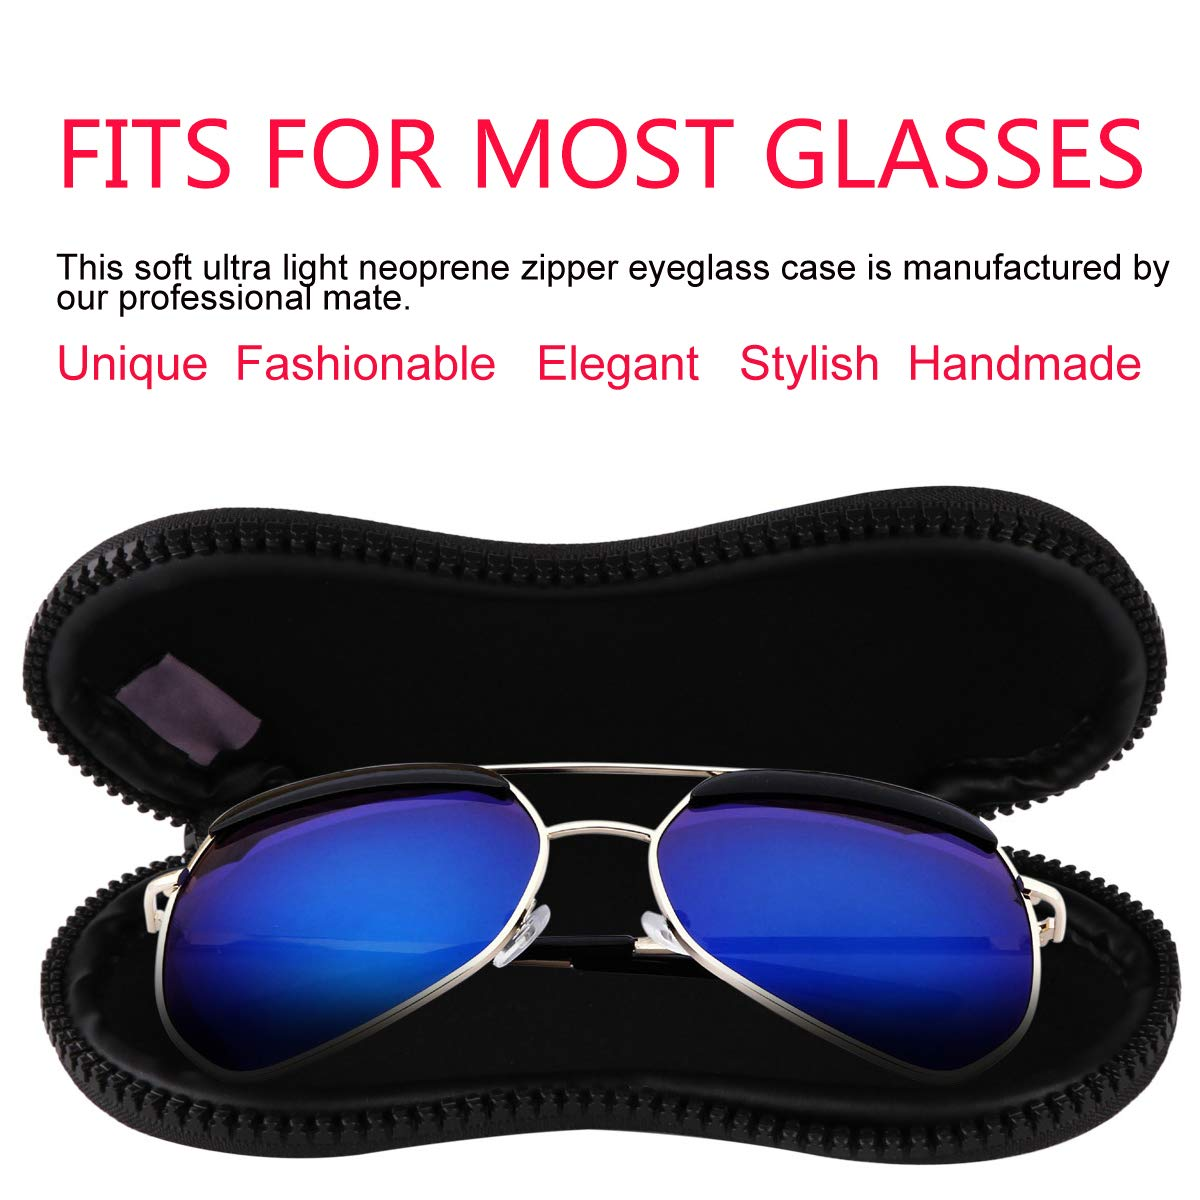 Sunglasses Soft Cases Ultra Light Portable Versatile Neoprene Zipper Eyeglass Cases 2 Pcs PG6 FF1